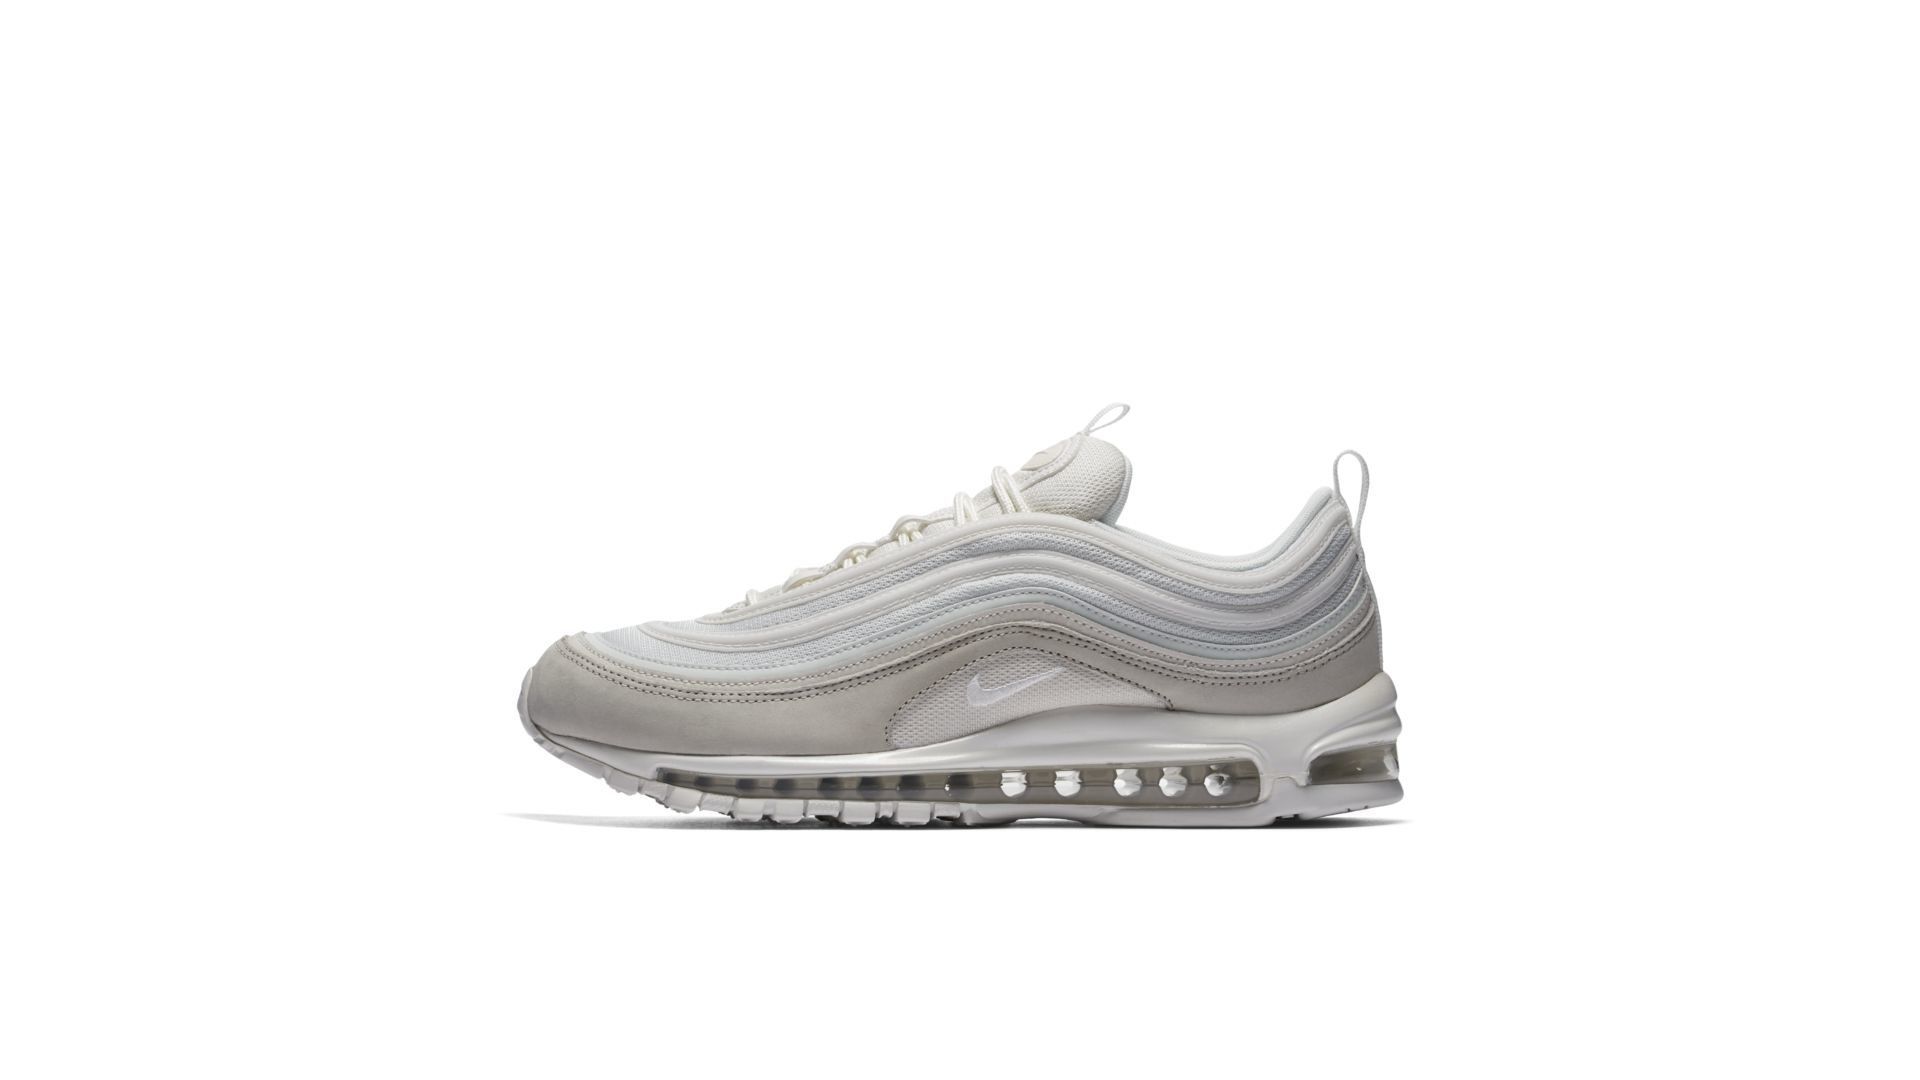 Nike Air Max 97 Premium Light Bone (312834-006)